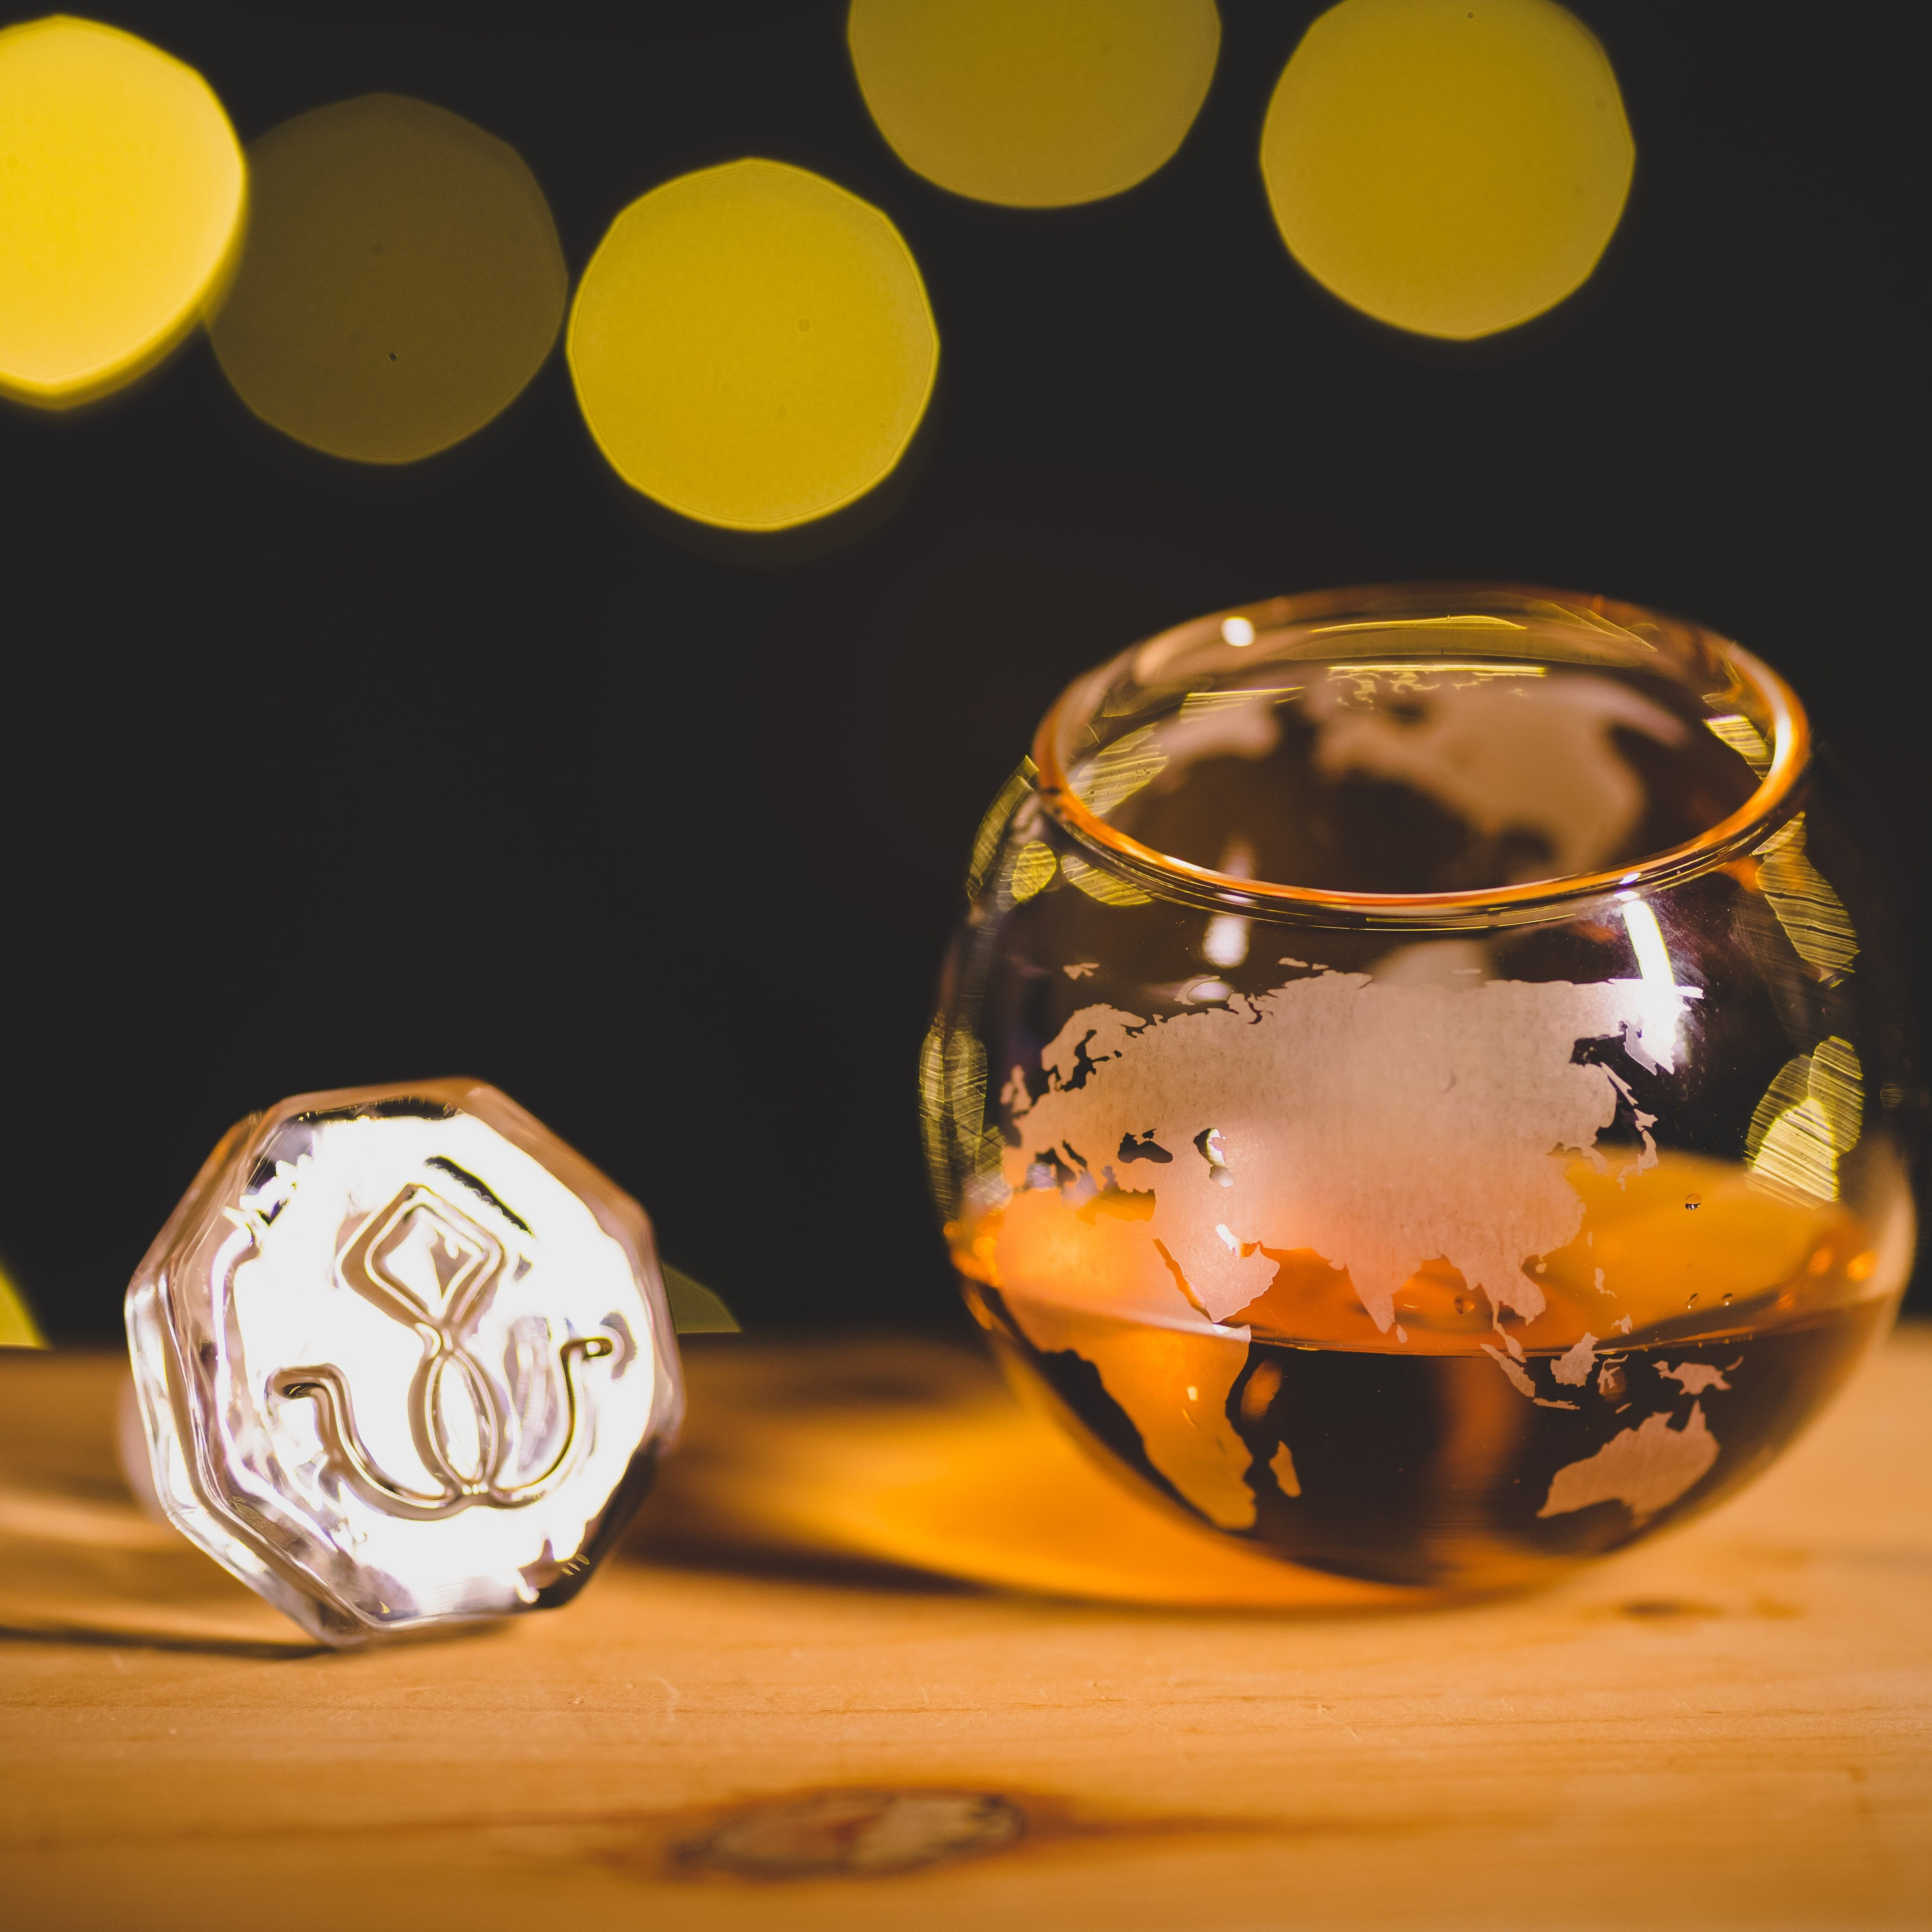 Spinning Globe Whiskey Old Fashioned Glass